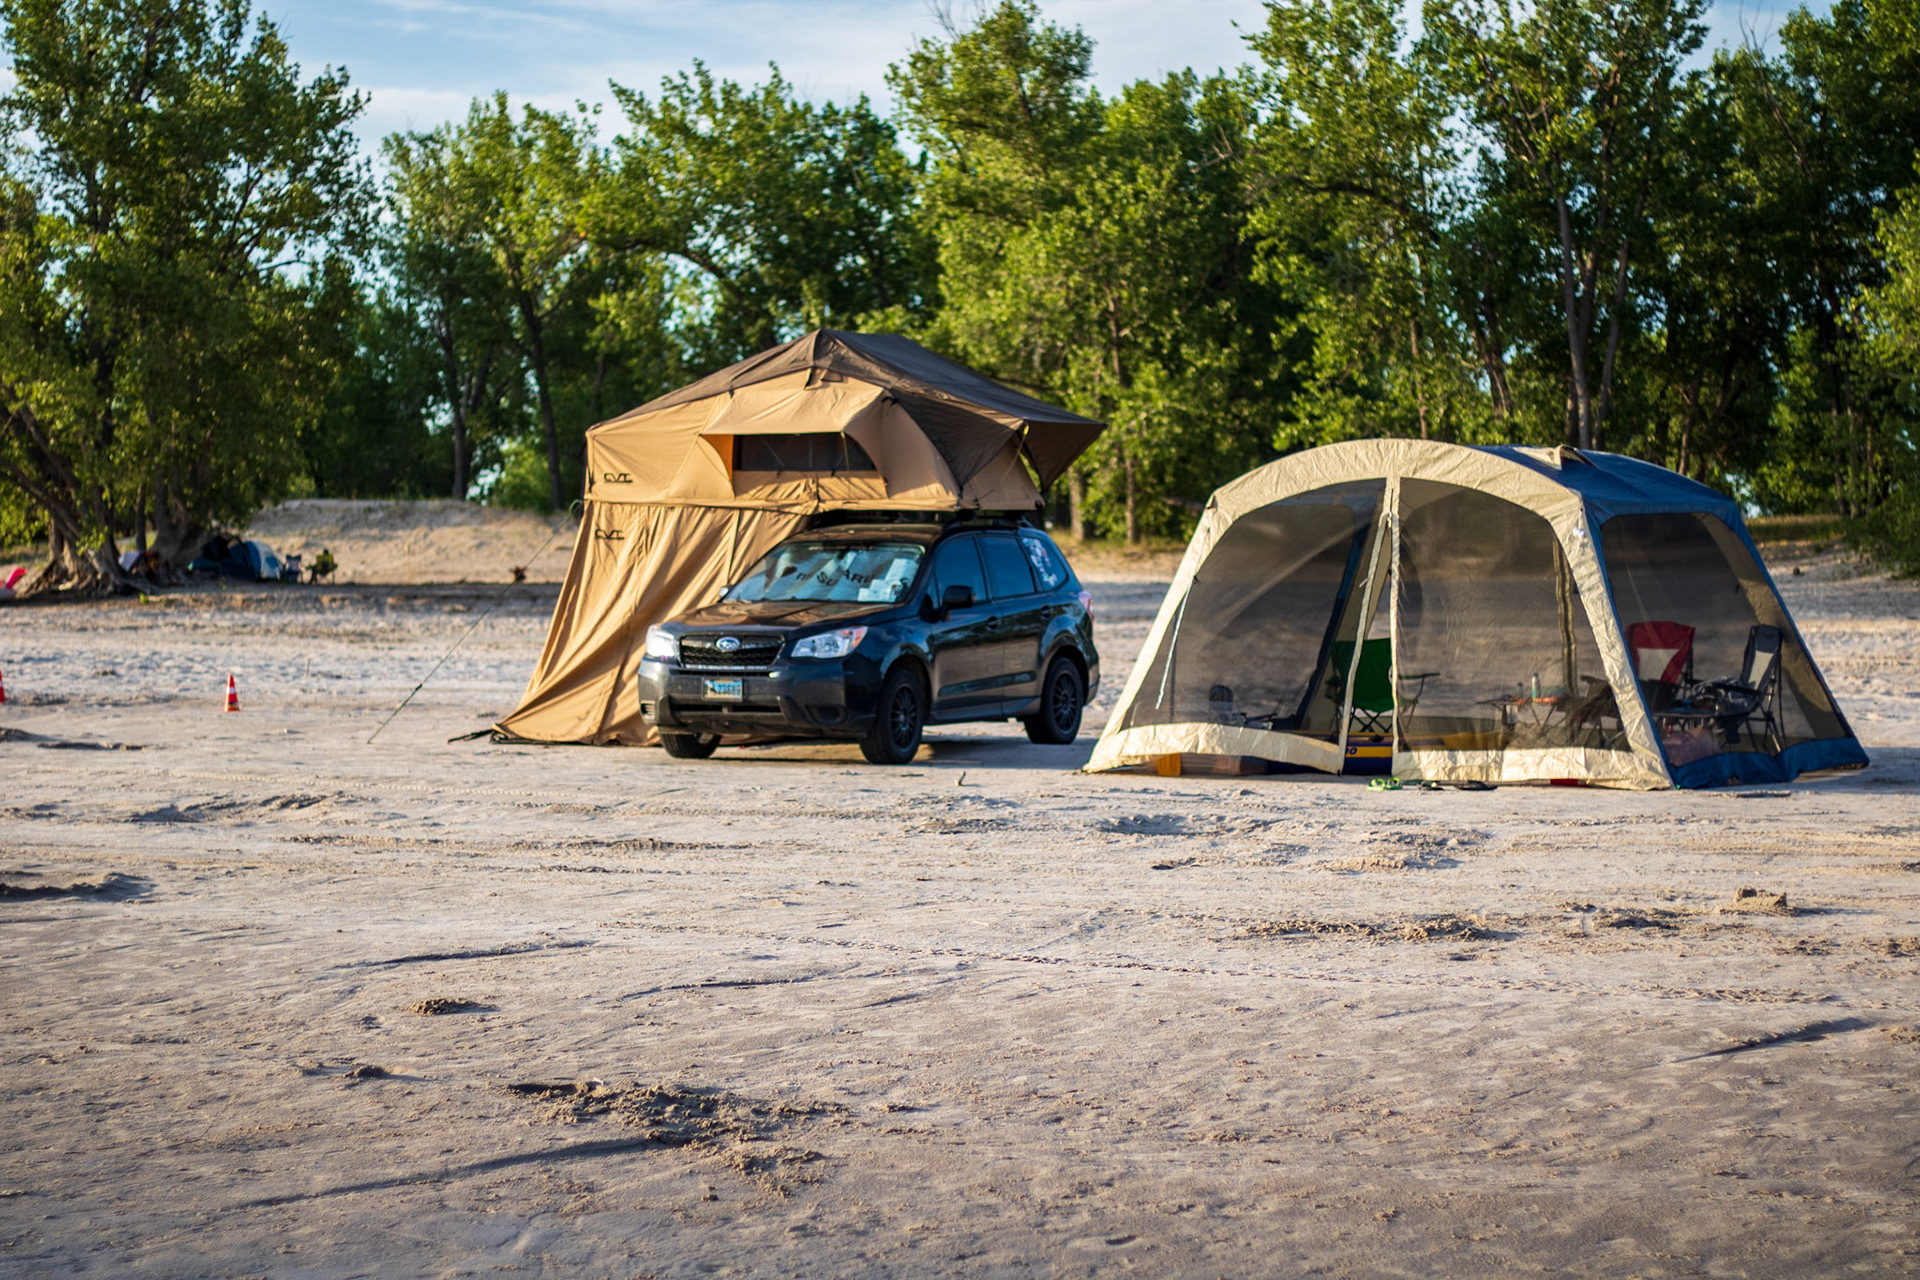 Dustin Parry - Lake McConaughy Camping Trip